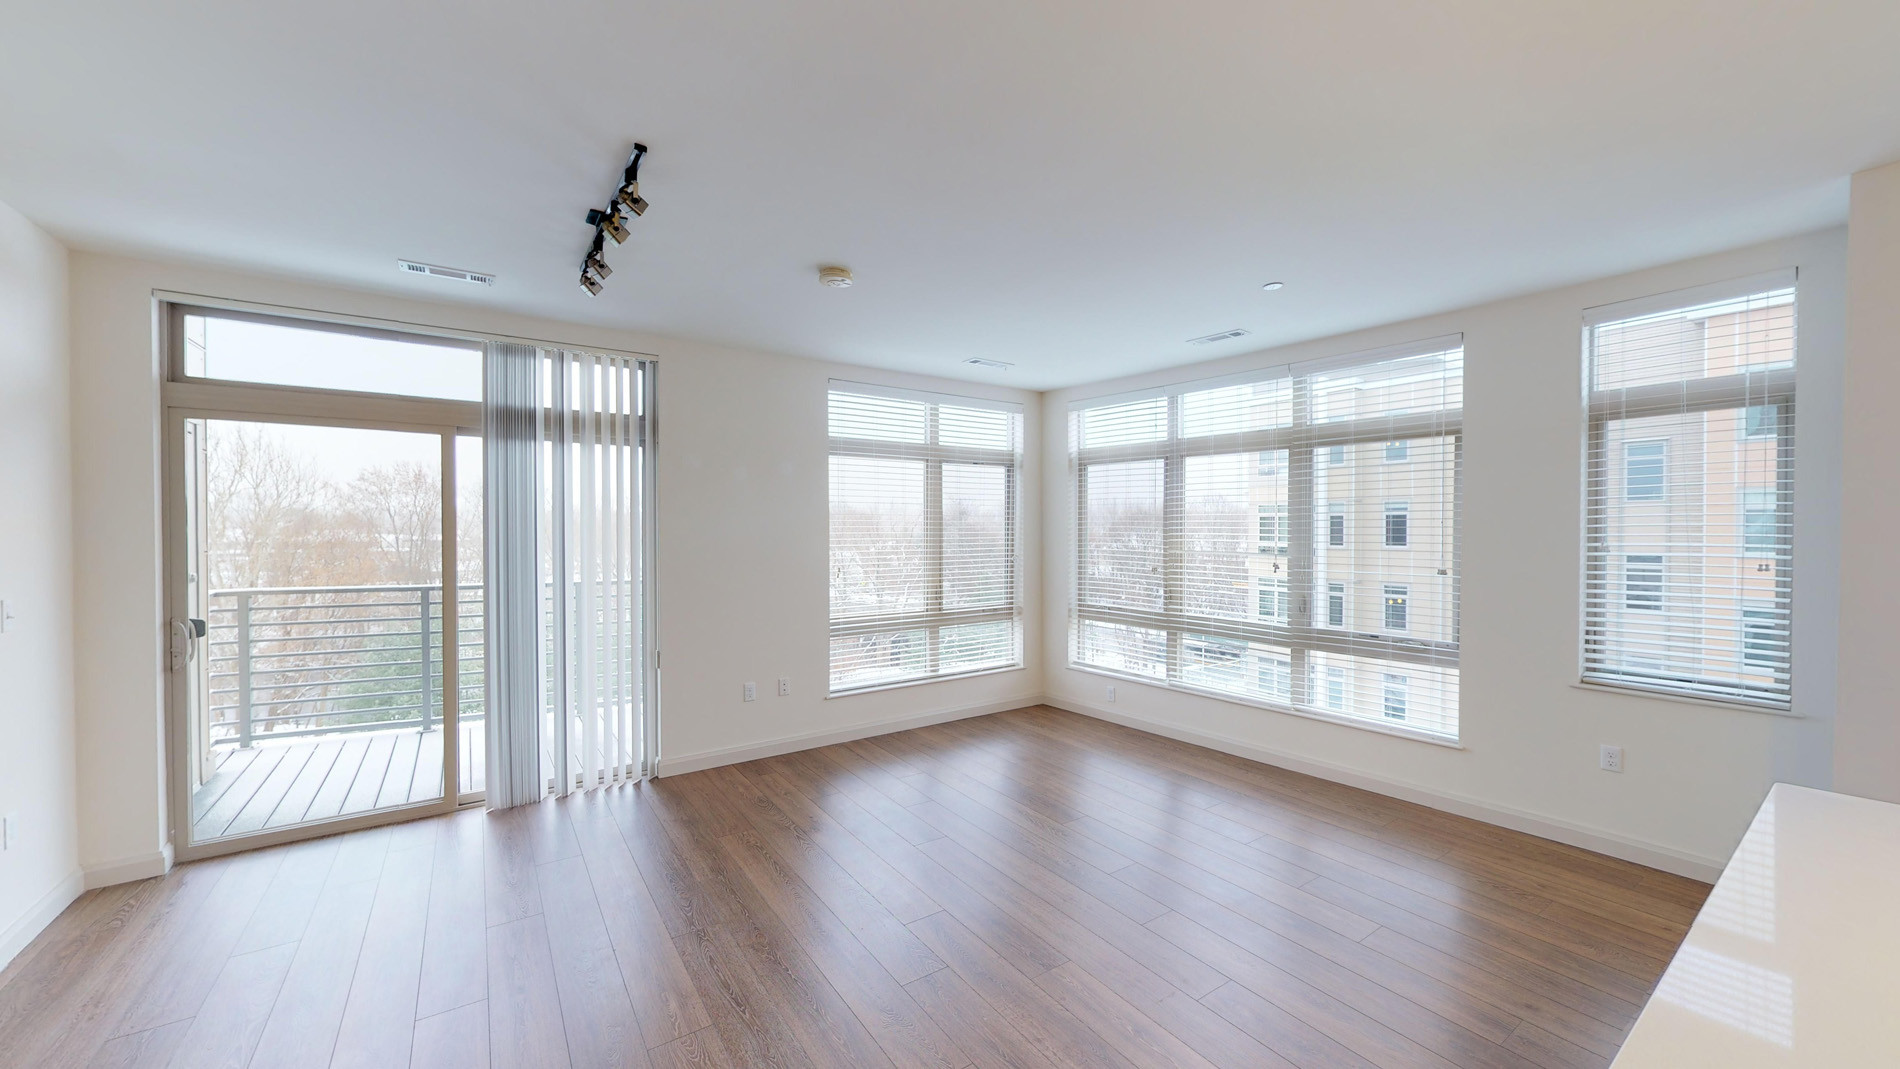 2 Beds, 2 Baths apartment in Waltham for $3,047